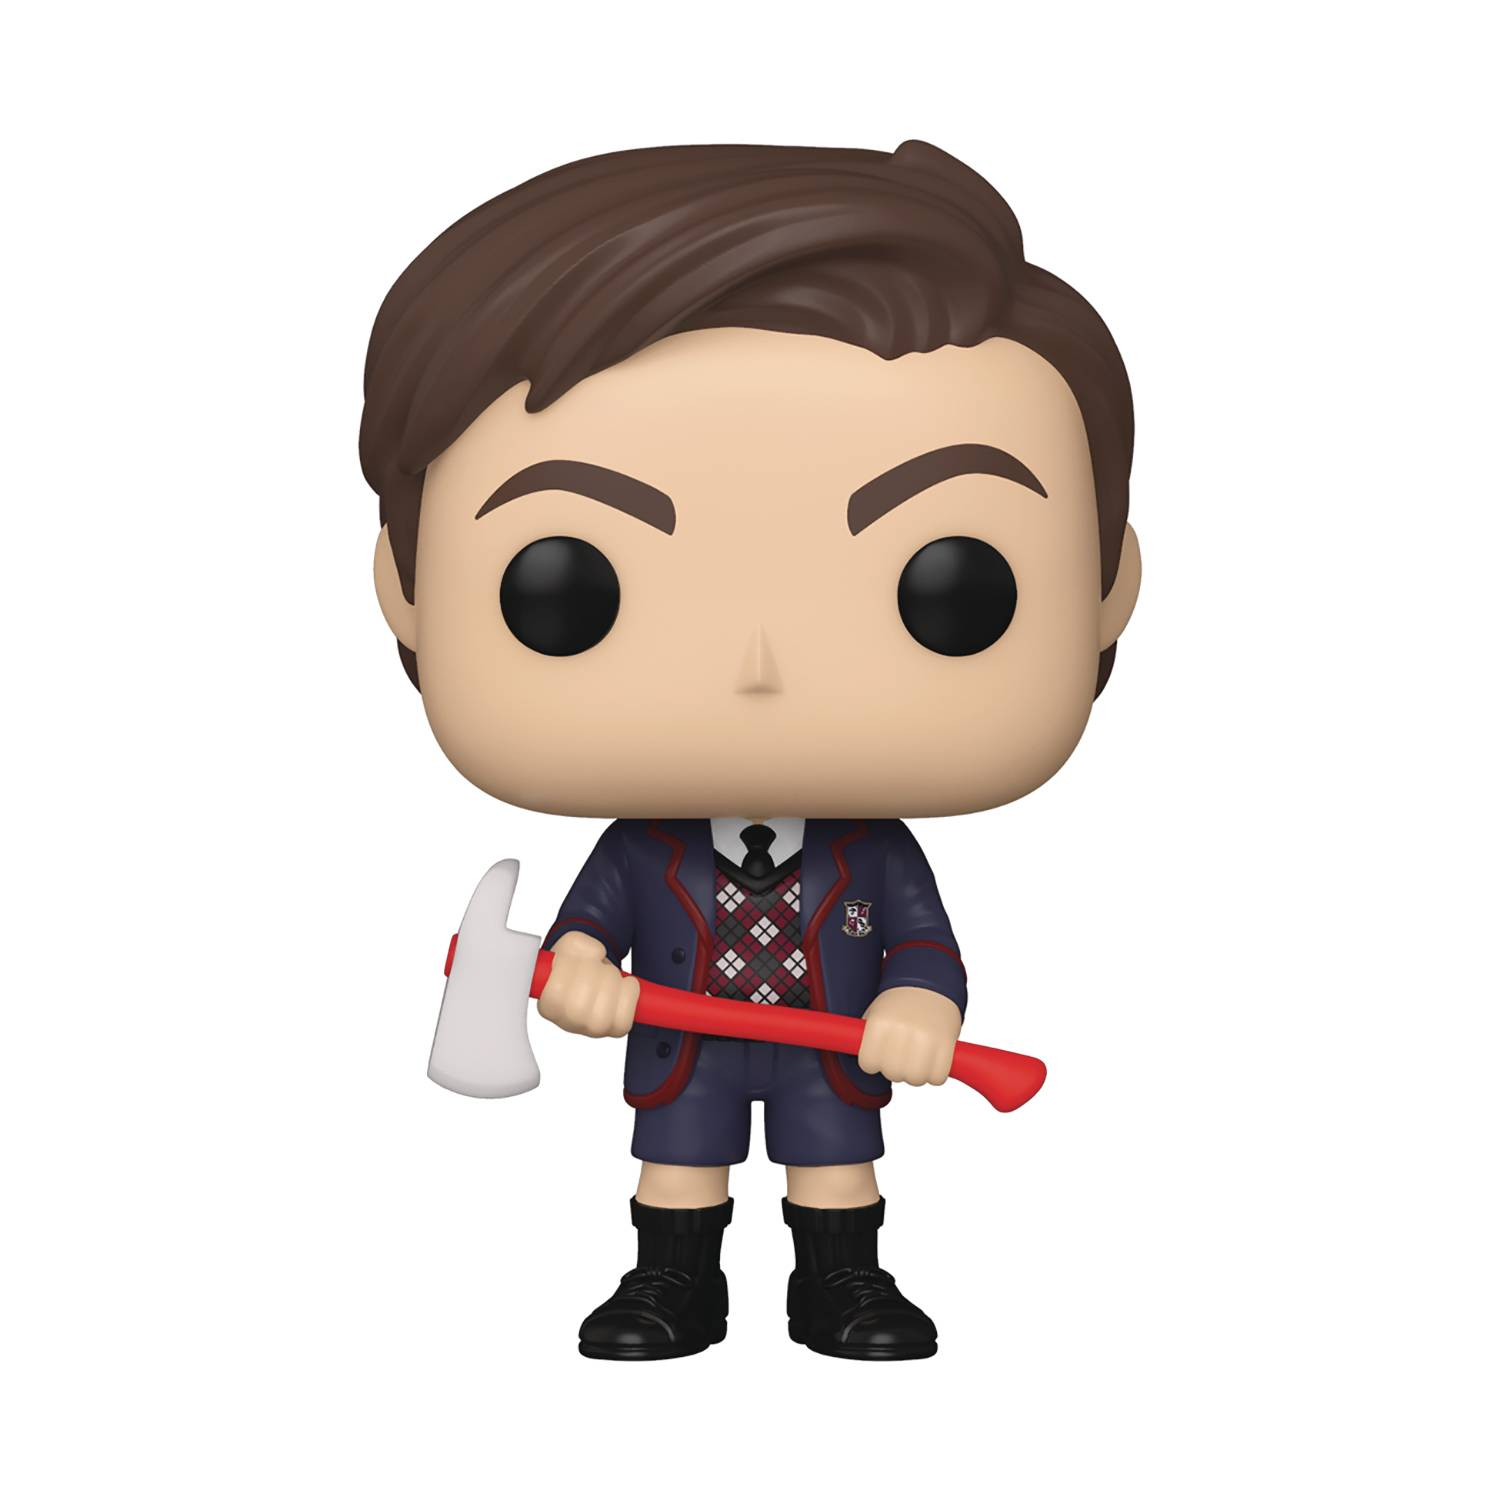 POP TV UMBRELLA ACADEMY NUMBER 5 VIN FIG (SEP209570)